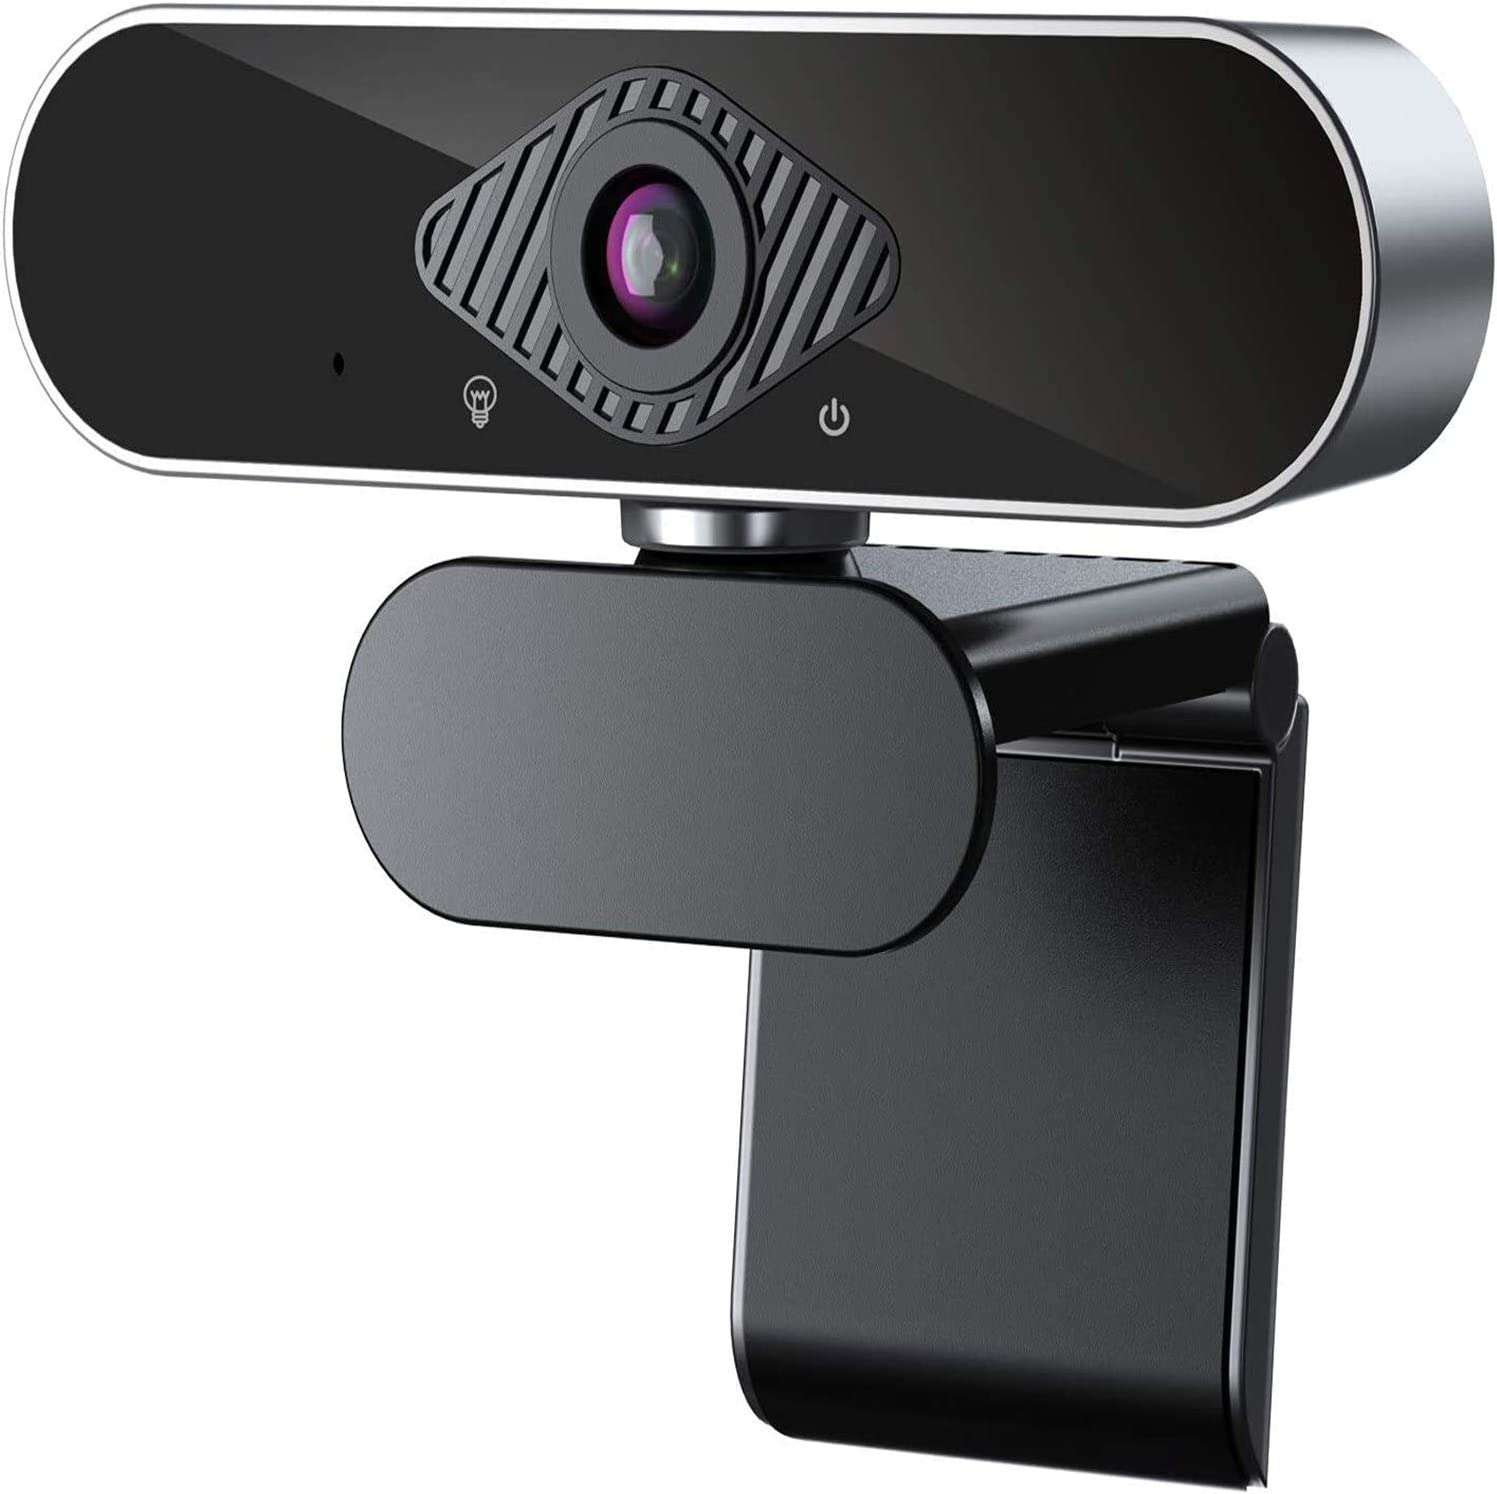 1080P Webcam with Dual Microphone,MASALING Computer Streaming Web Camera USB Webcam with Auto Light Correction Desktop Laptop Webcam for Video Conferencing, Teaching, Streaming and Gaming